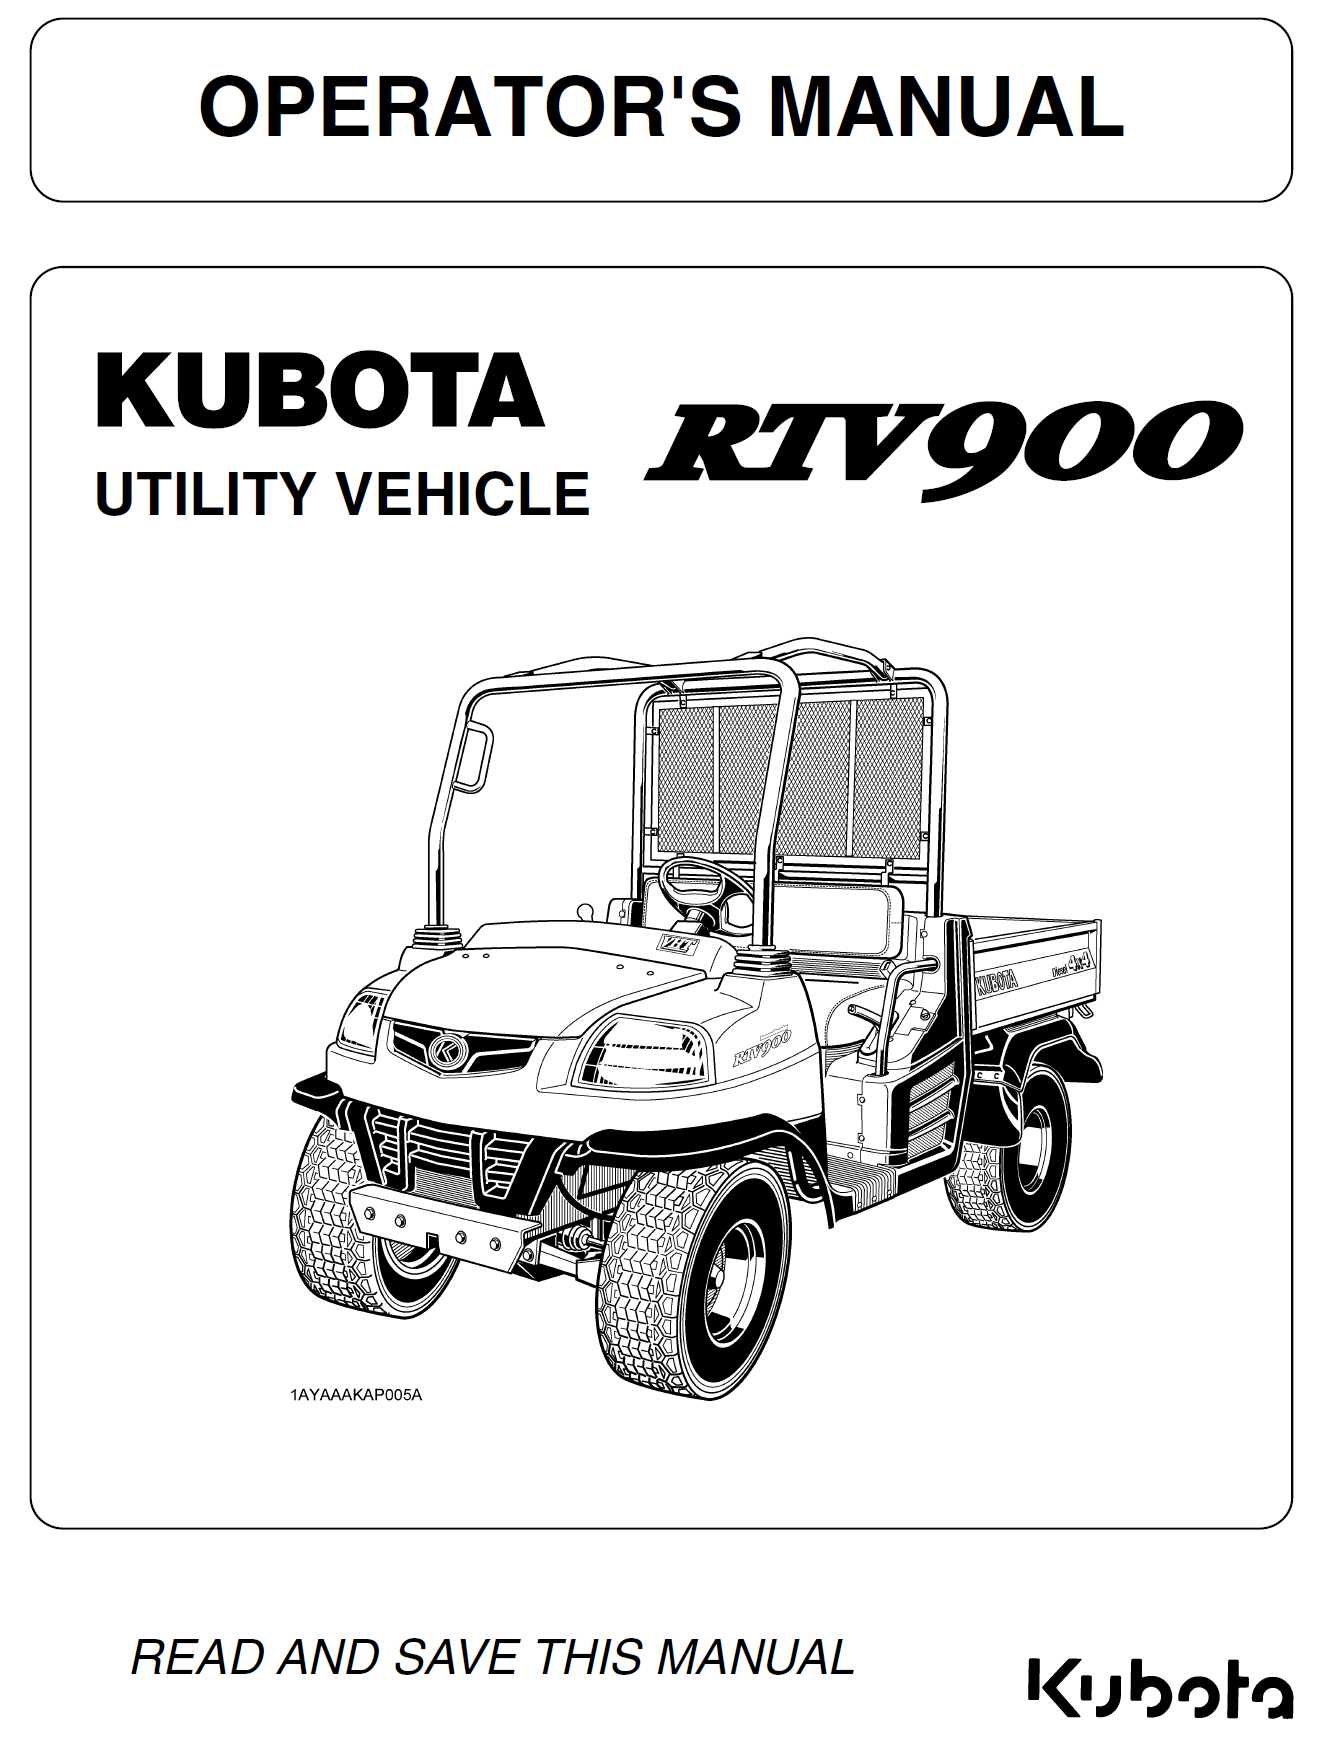 Kubota RTV900 Operators Manual | Garton Tractor | California | Kubota & New  Holland Tractors Equipment